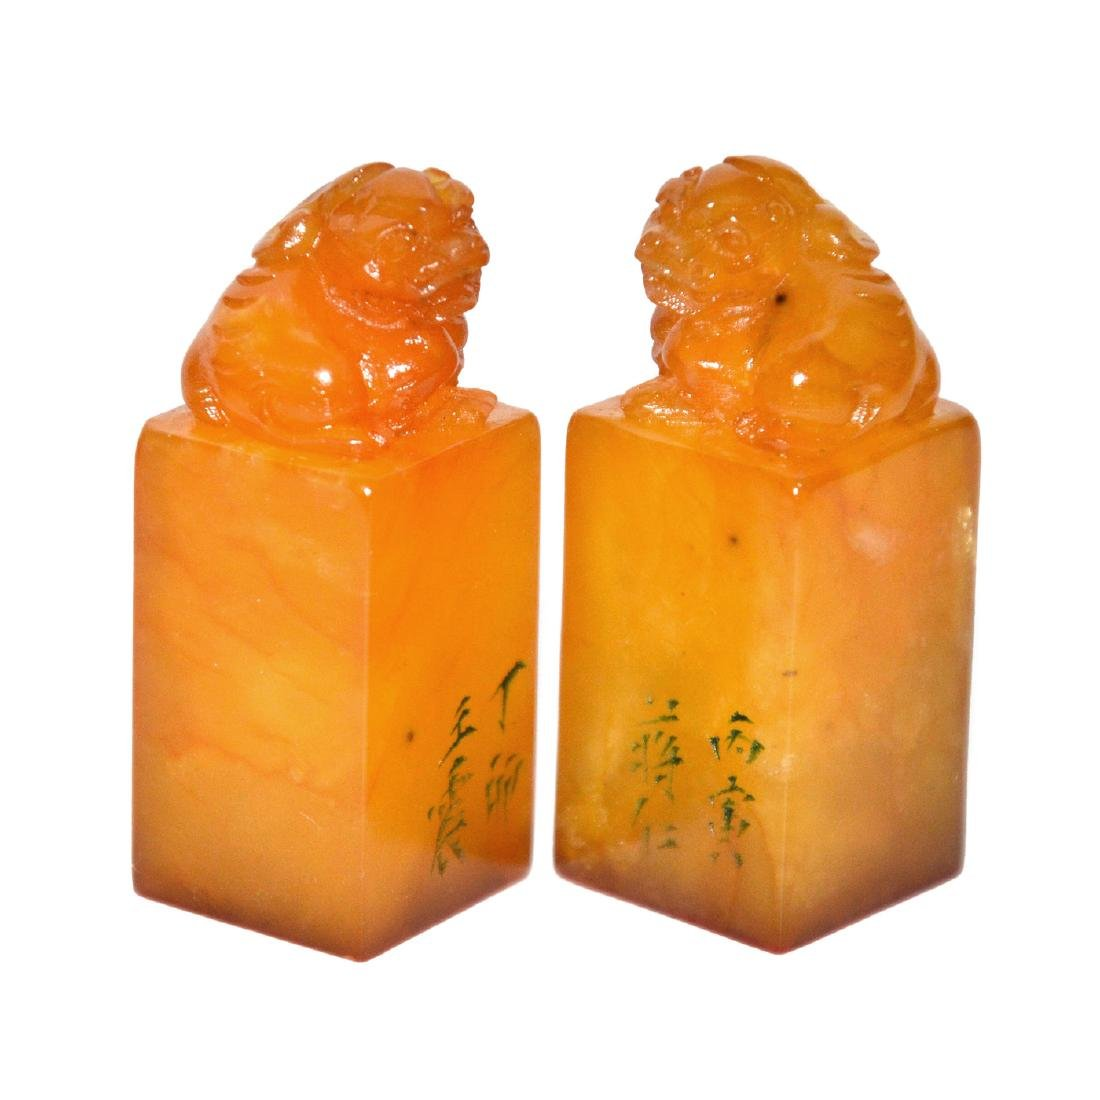 A Pair of Yellow Furong Stone Seals with 'Fu ' Box and - 4